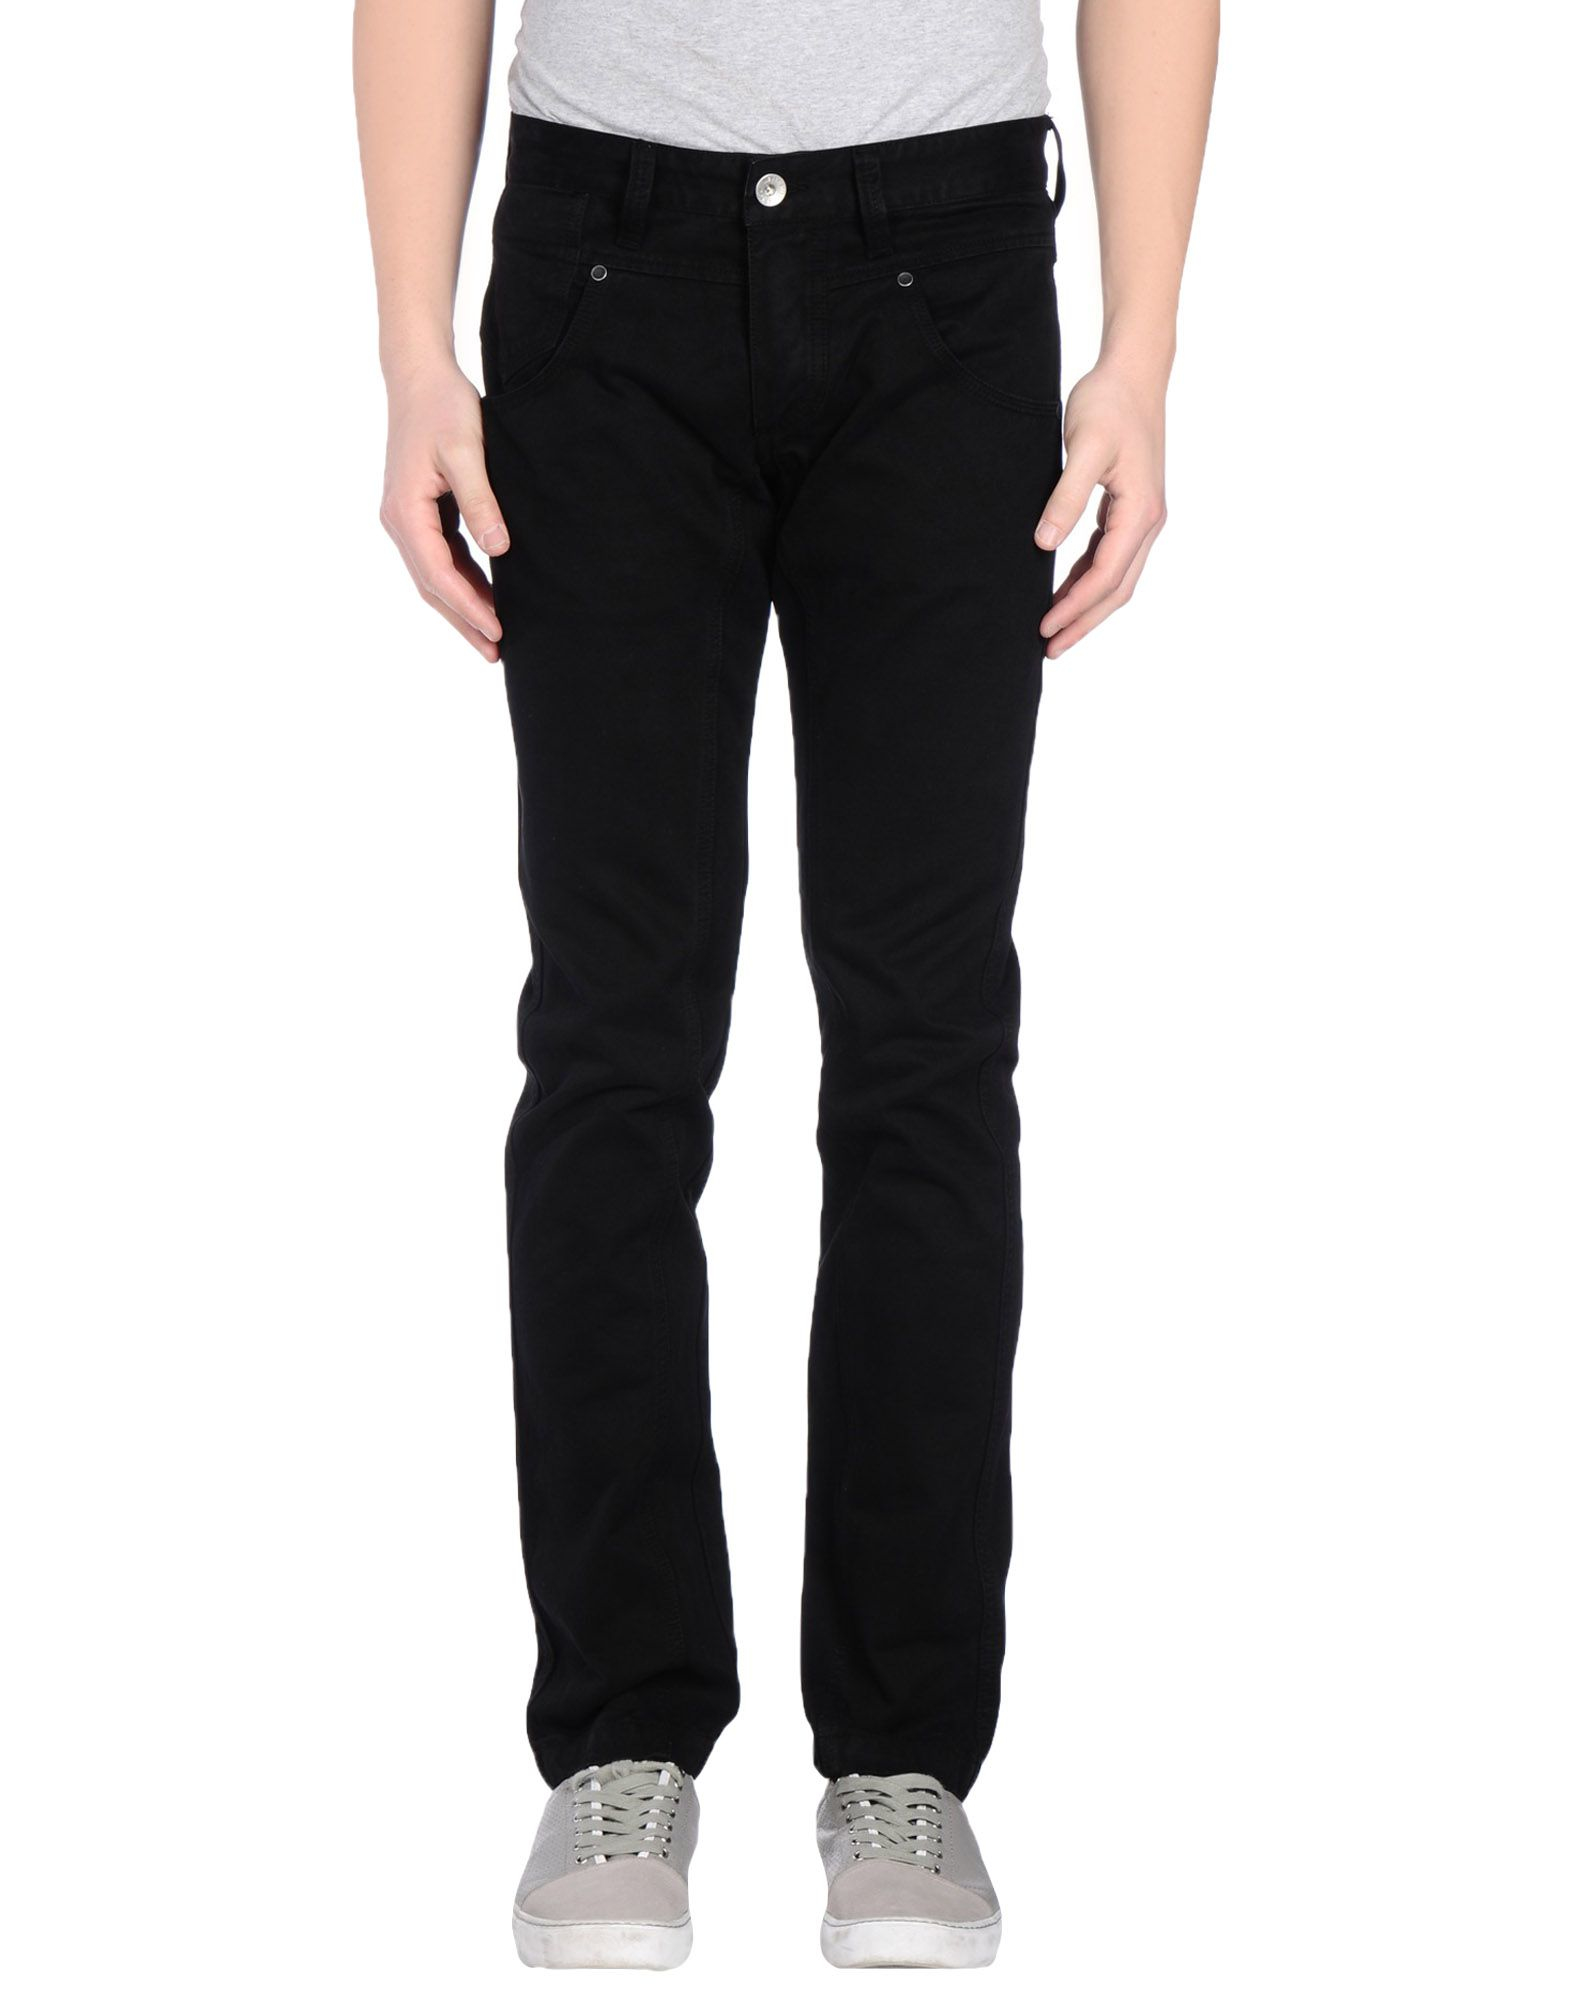 Nwy never without you Denim Pants in Black for Men